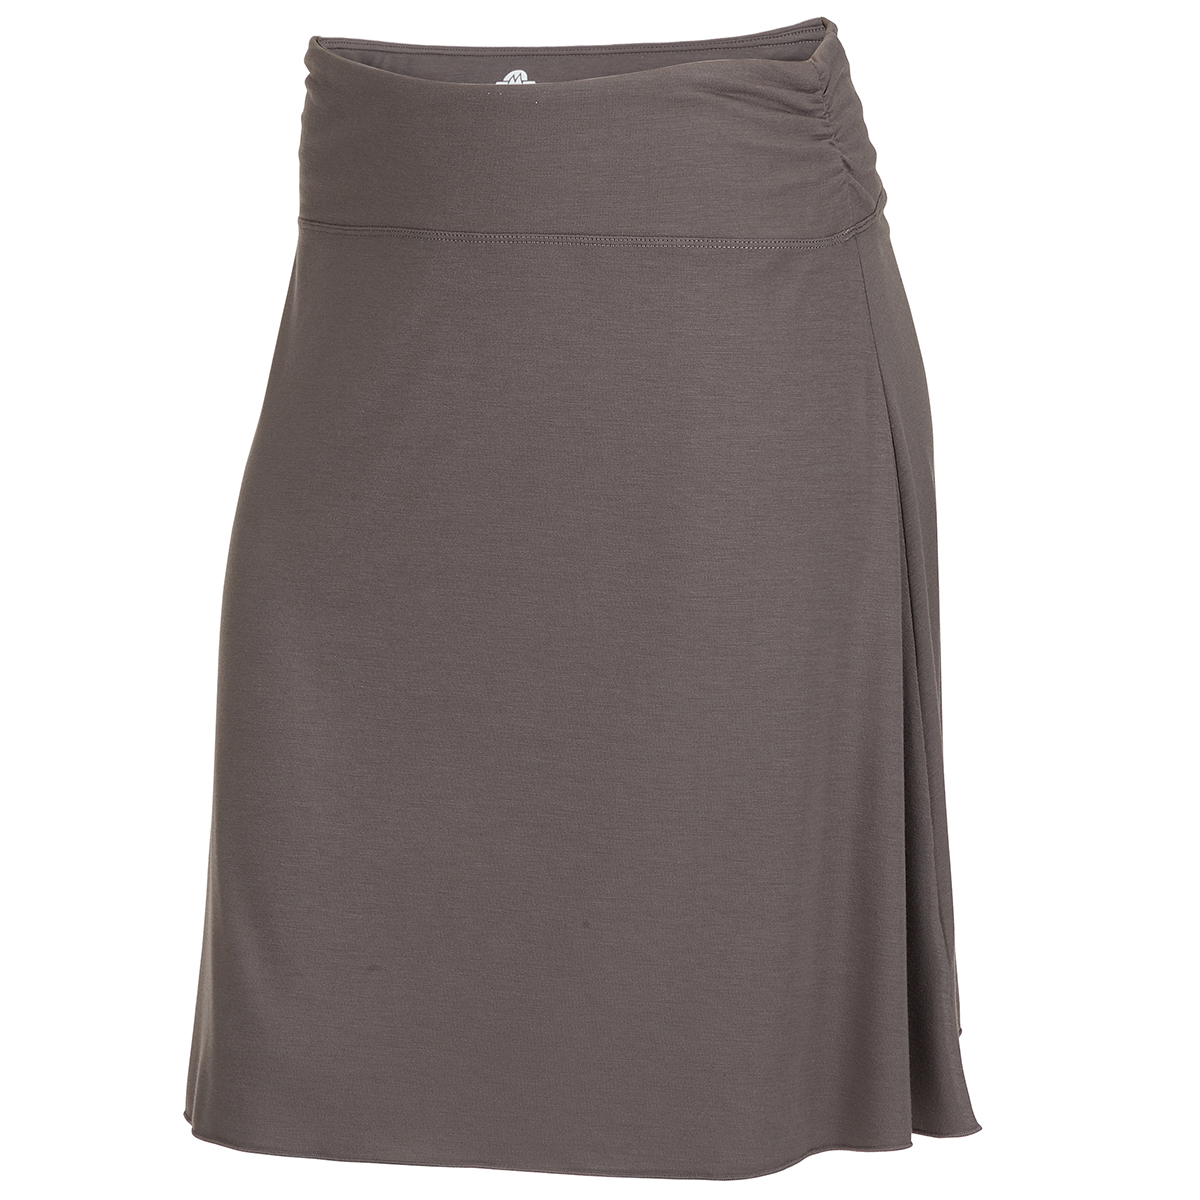 Ems Women's Highland Skirt - Brown, XS